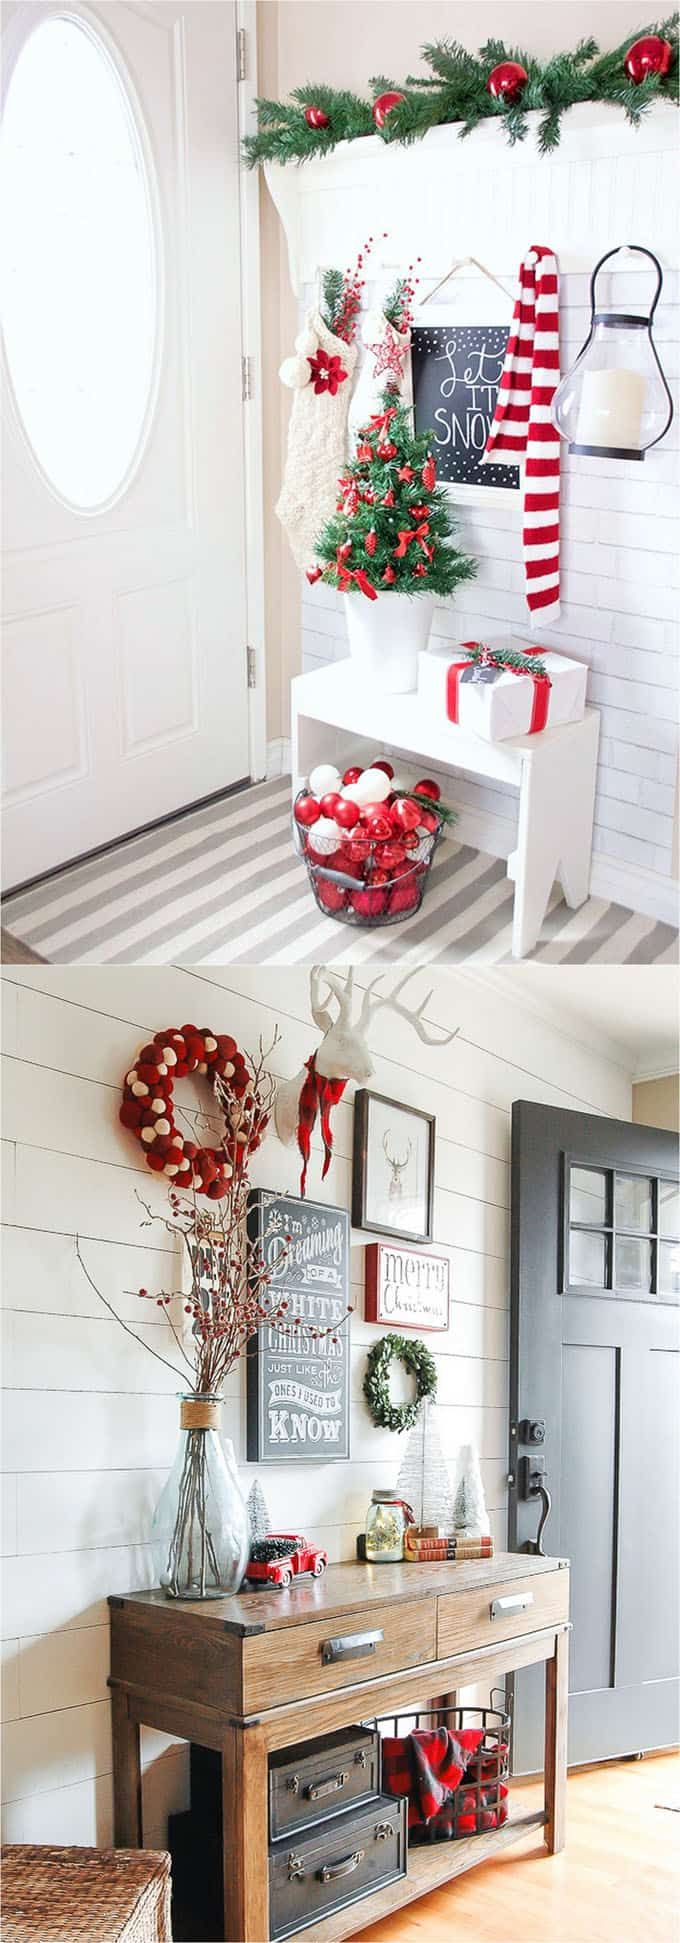 Christmas entryway:100+ Favorite Christmas decorating ideas & DIY Christmas decorations for every room, from the best Christmas home tours! Lots of great tips to apply to your own home easily! A Piece of Rainbow